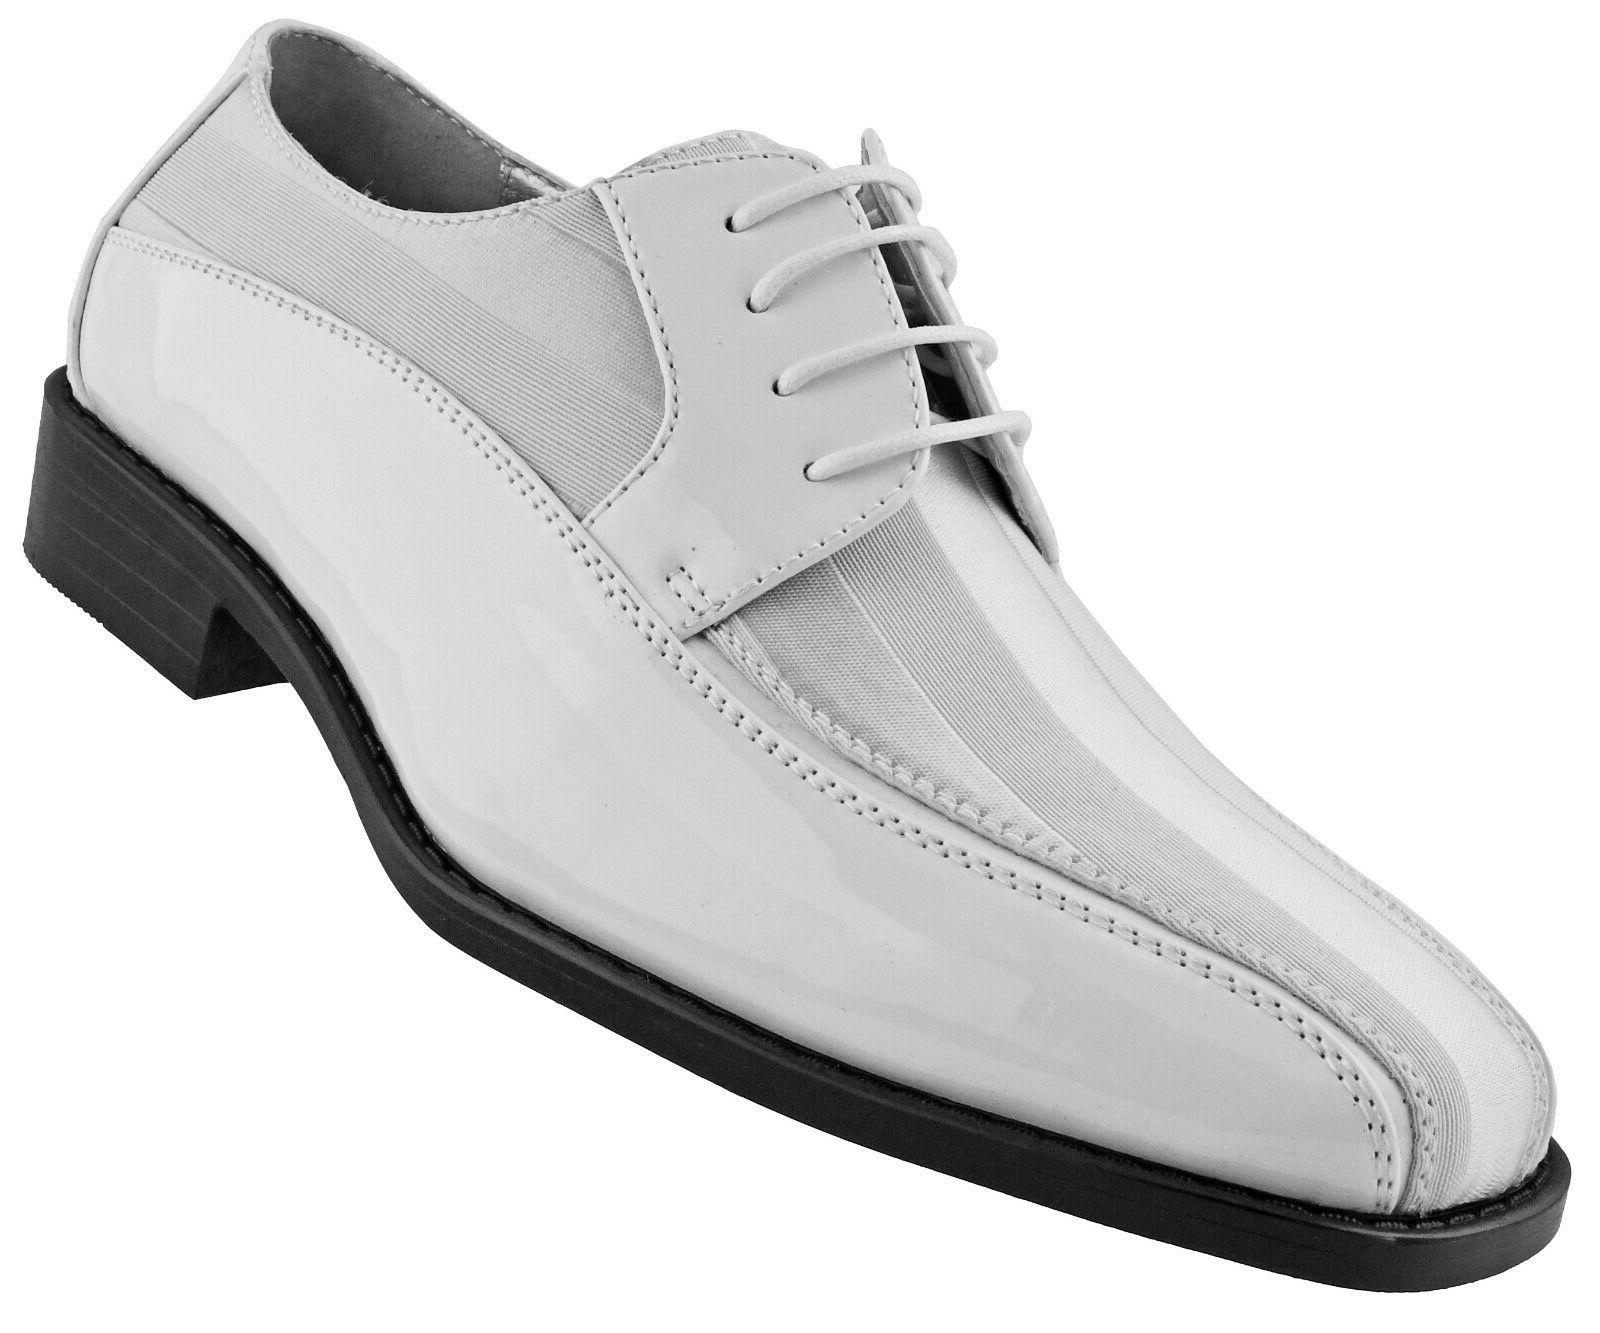 Amali Satin Striped Formal Wedding Lace Up Oxford Dress Shoe